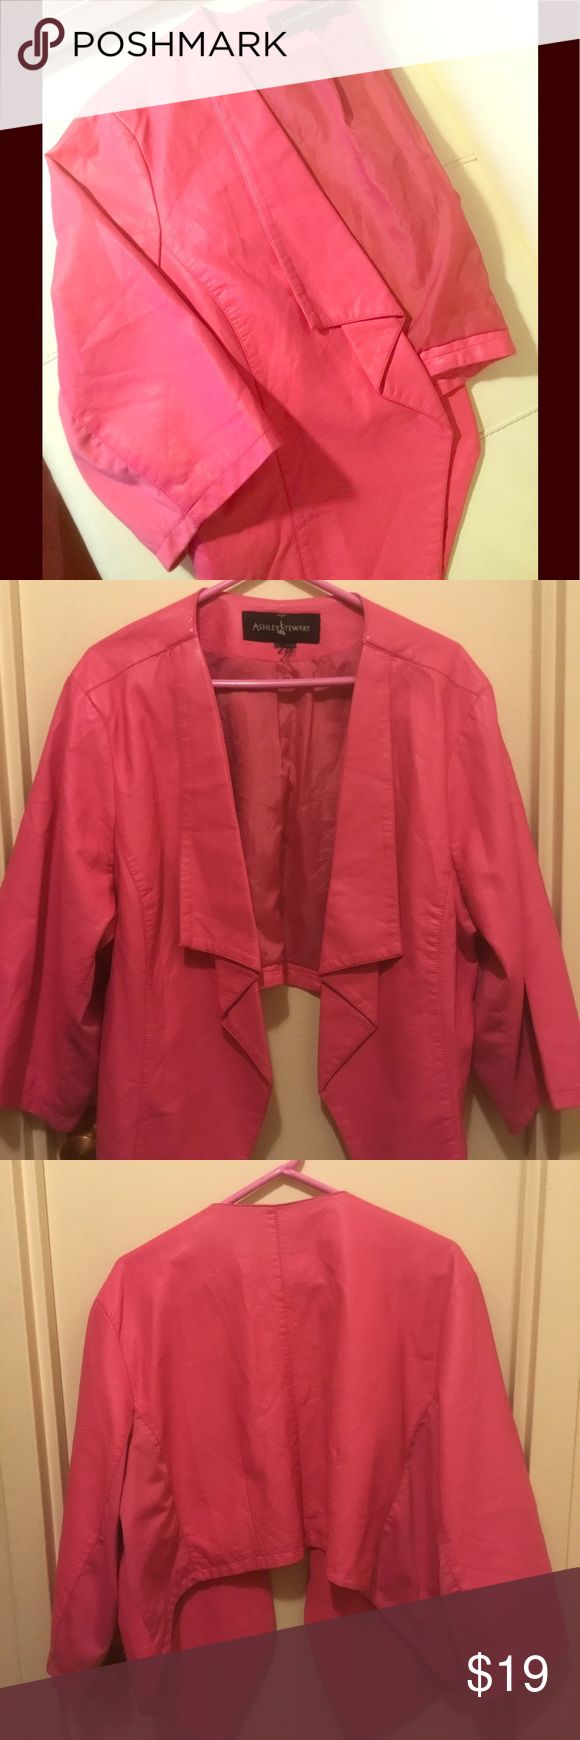 Ashley Stewart Pink Cropped Vegan Faux Leather Lar Ashley Stewart Pink Cropped Vegan Faux Leather Size Large Ashley Stewart Jackets & Coats